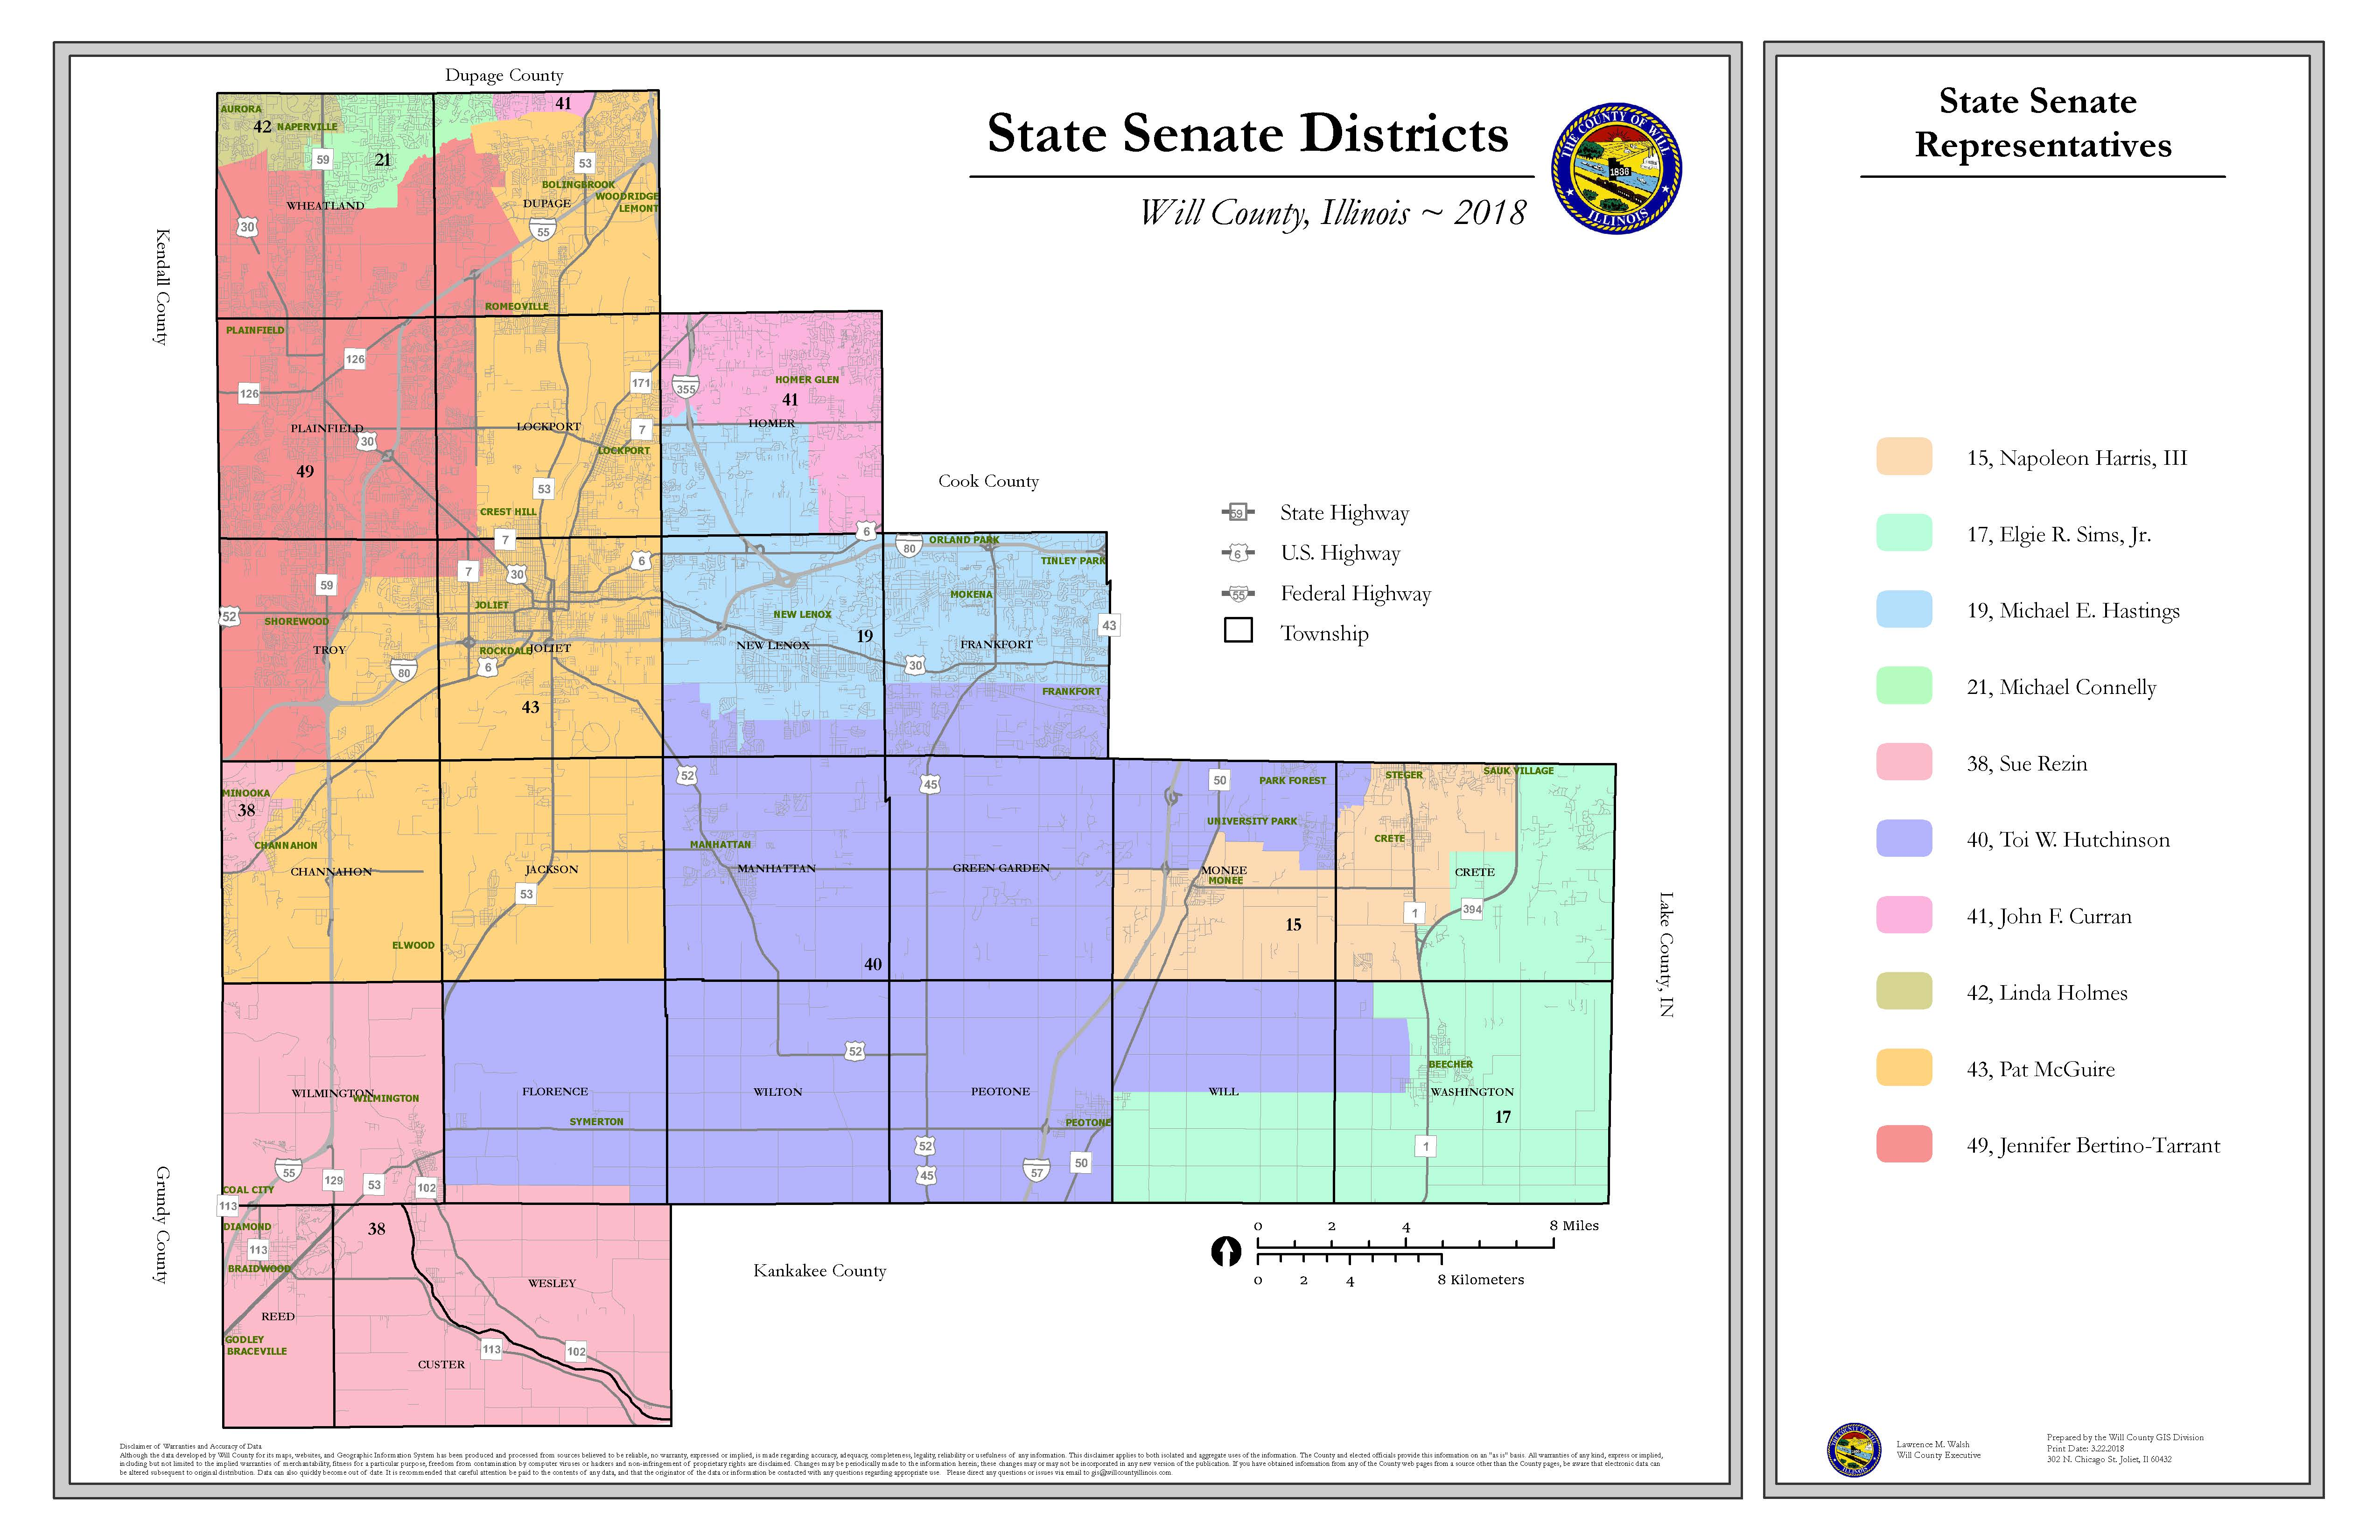 Will County Illinois State Senate Districts map